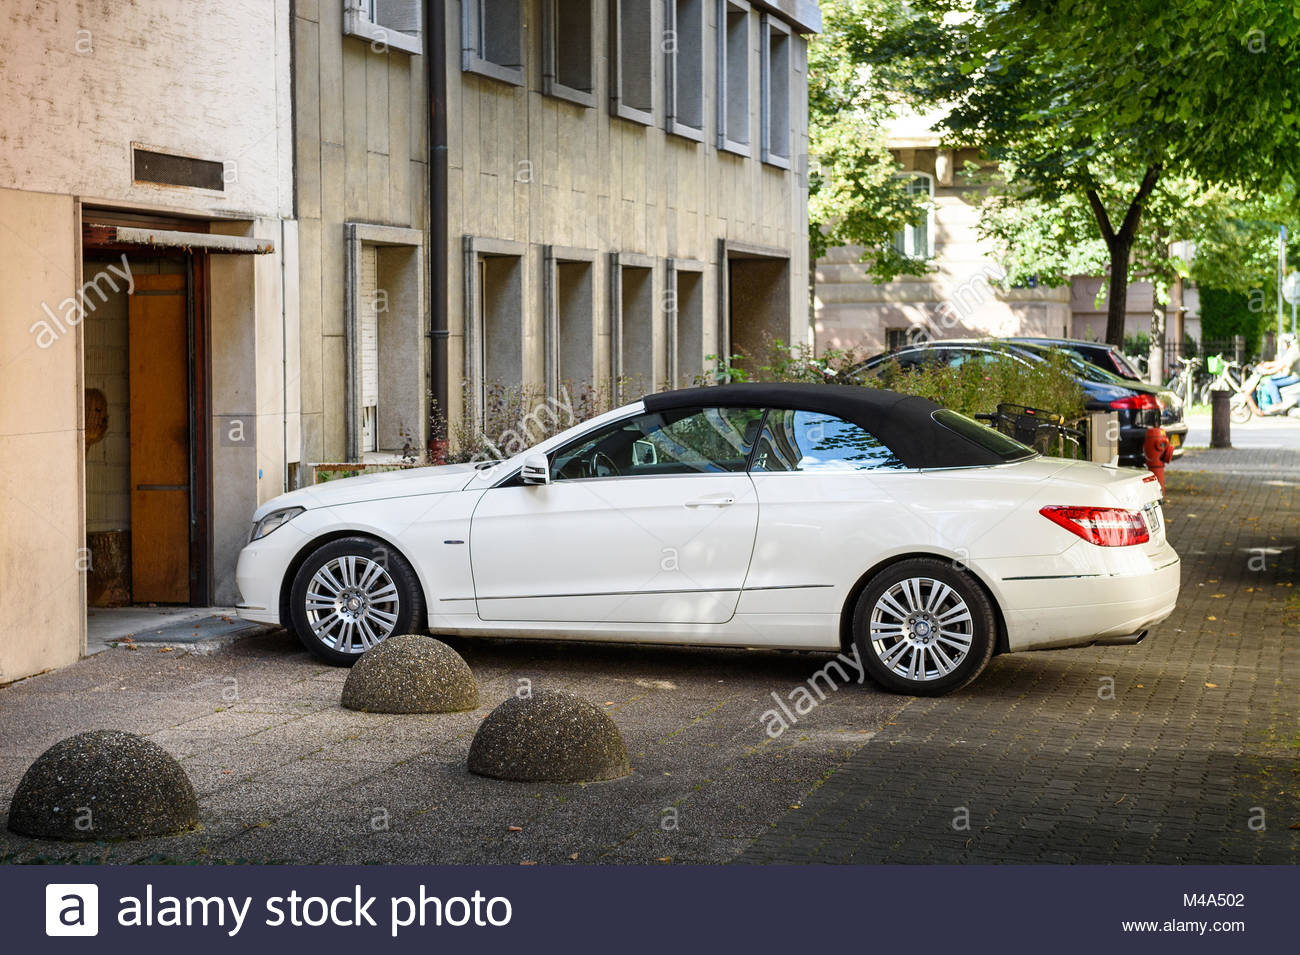 Luxury Mercedes-Benz CLK convertible car entering through garage - Stock Image